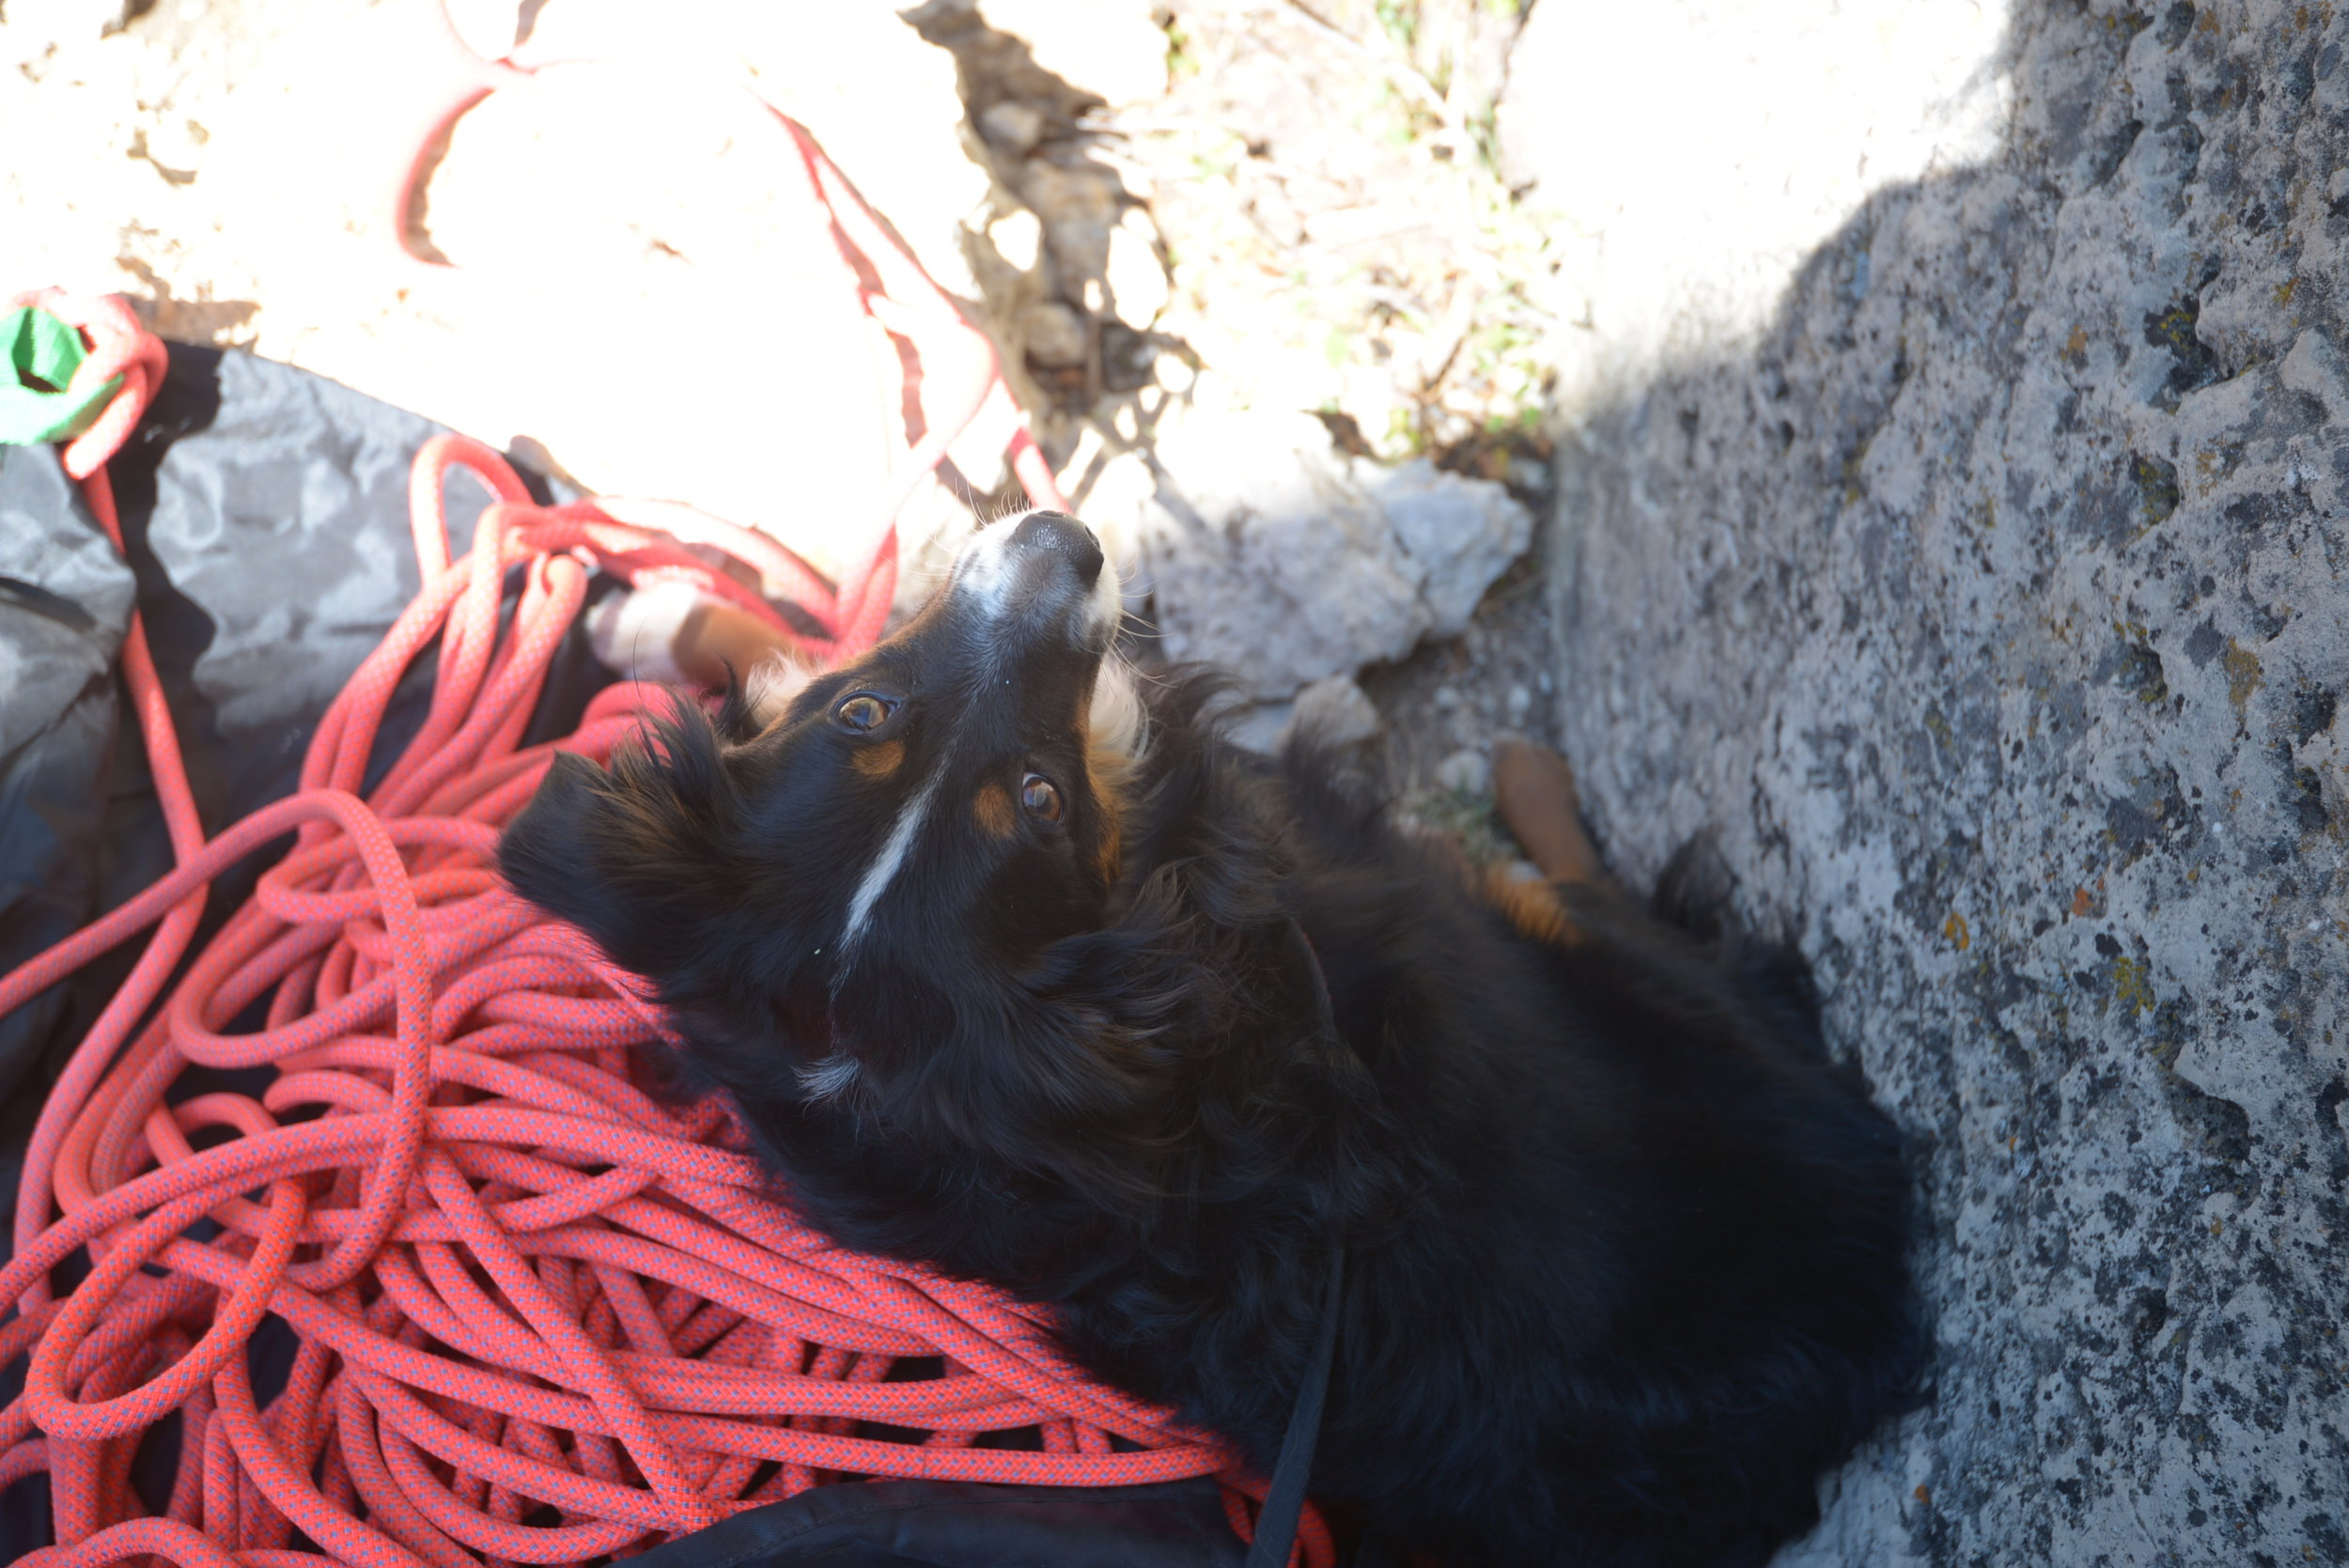 Our crag dog Riley. You'll see him in my previous article (The Finds, Idaho.)